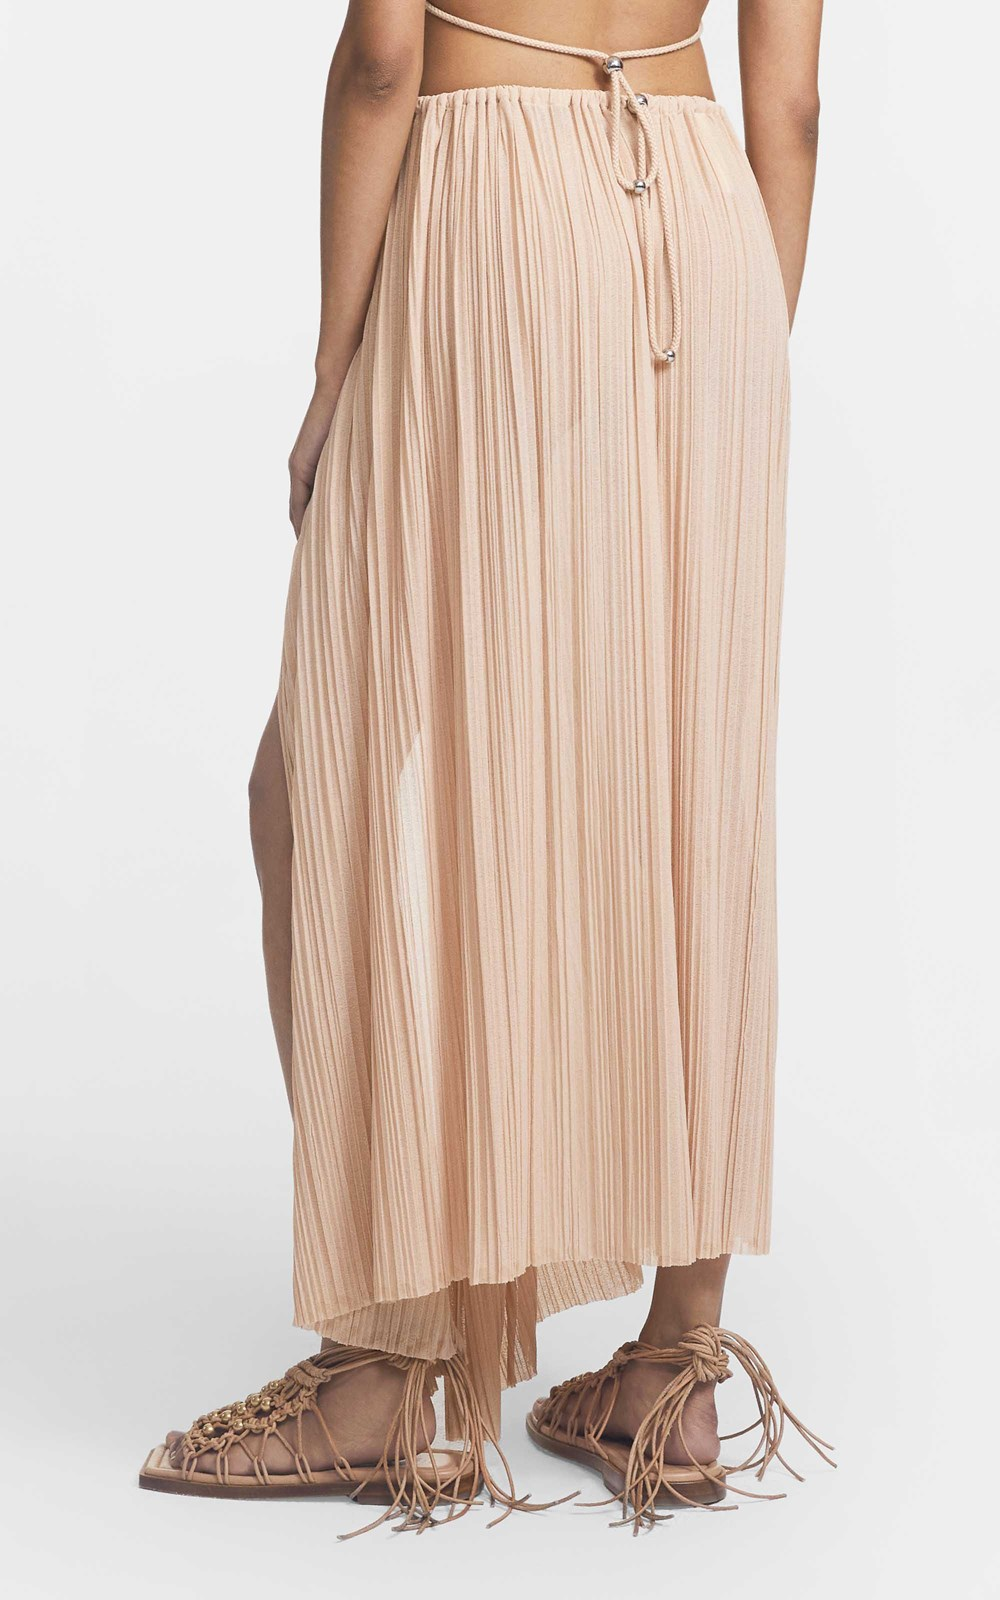 Skirts | PLEATED BEAD GATHER SKIRT